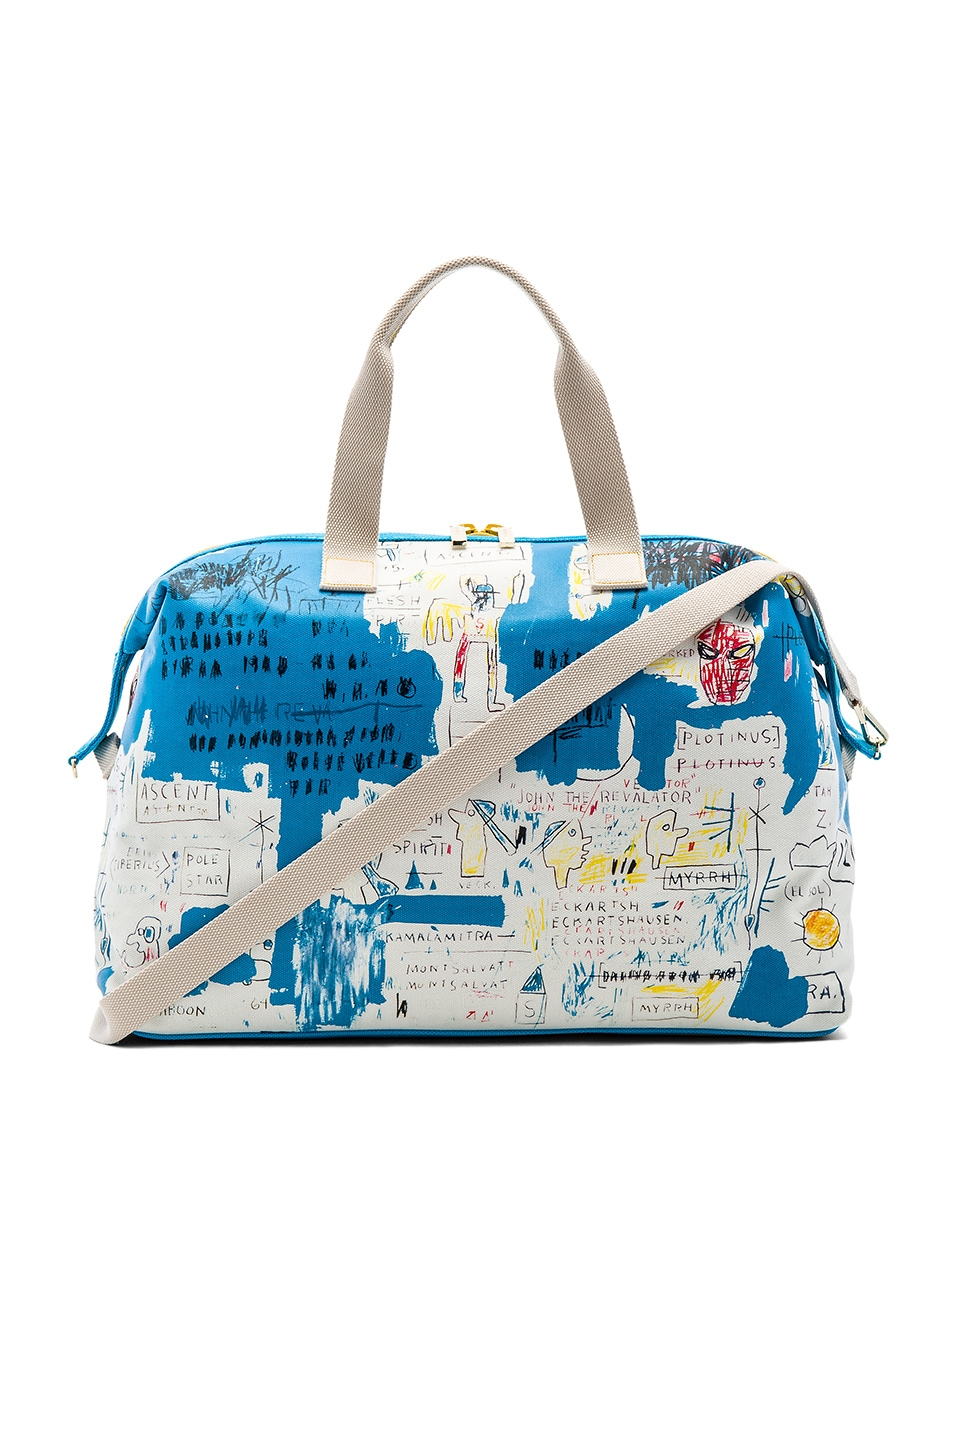 Alice + Olivia Basquiat Ascent Weekender Bag in Multi